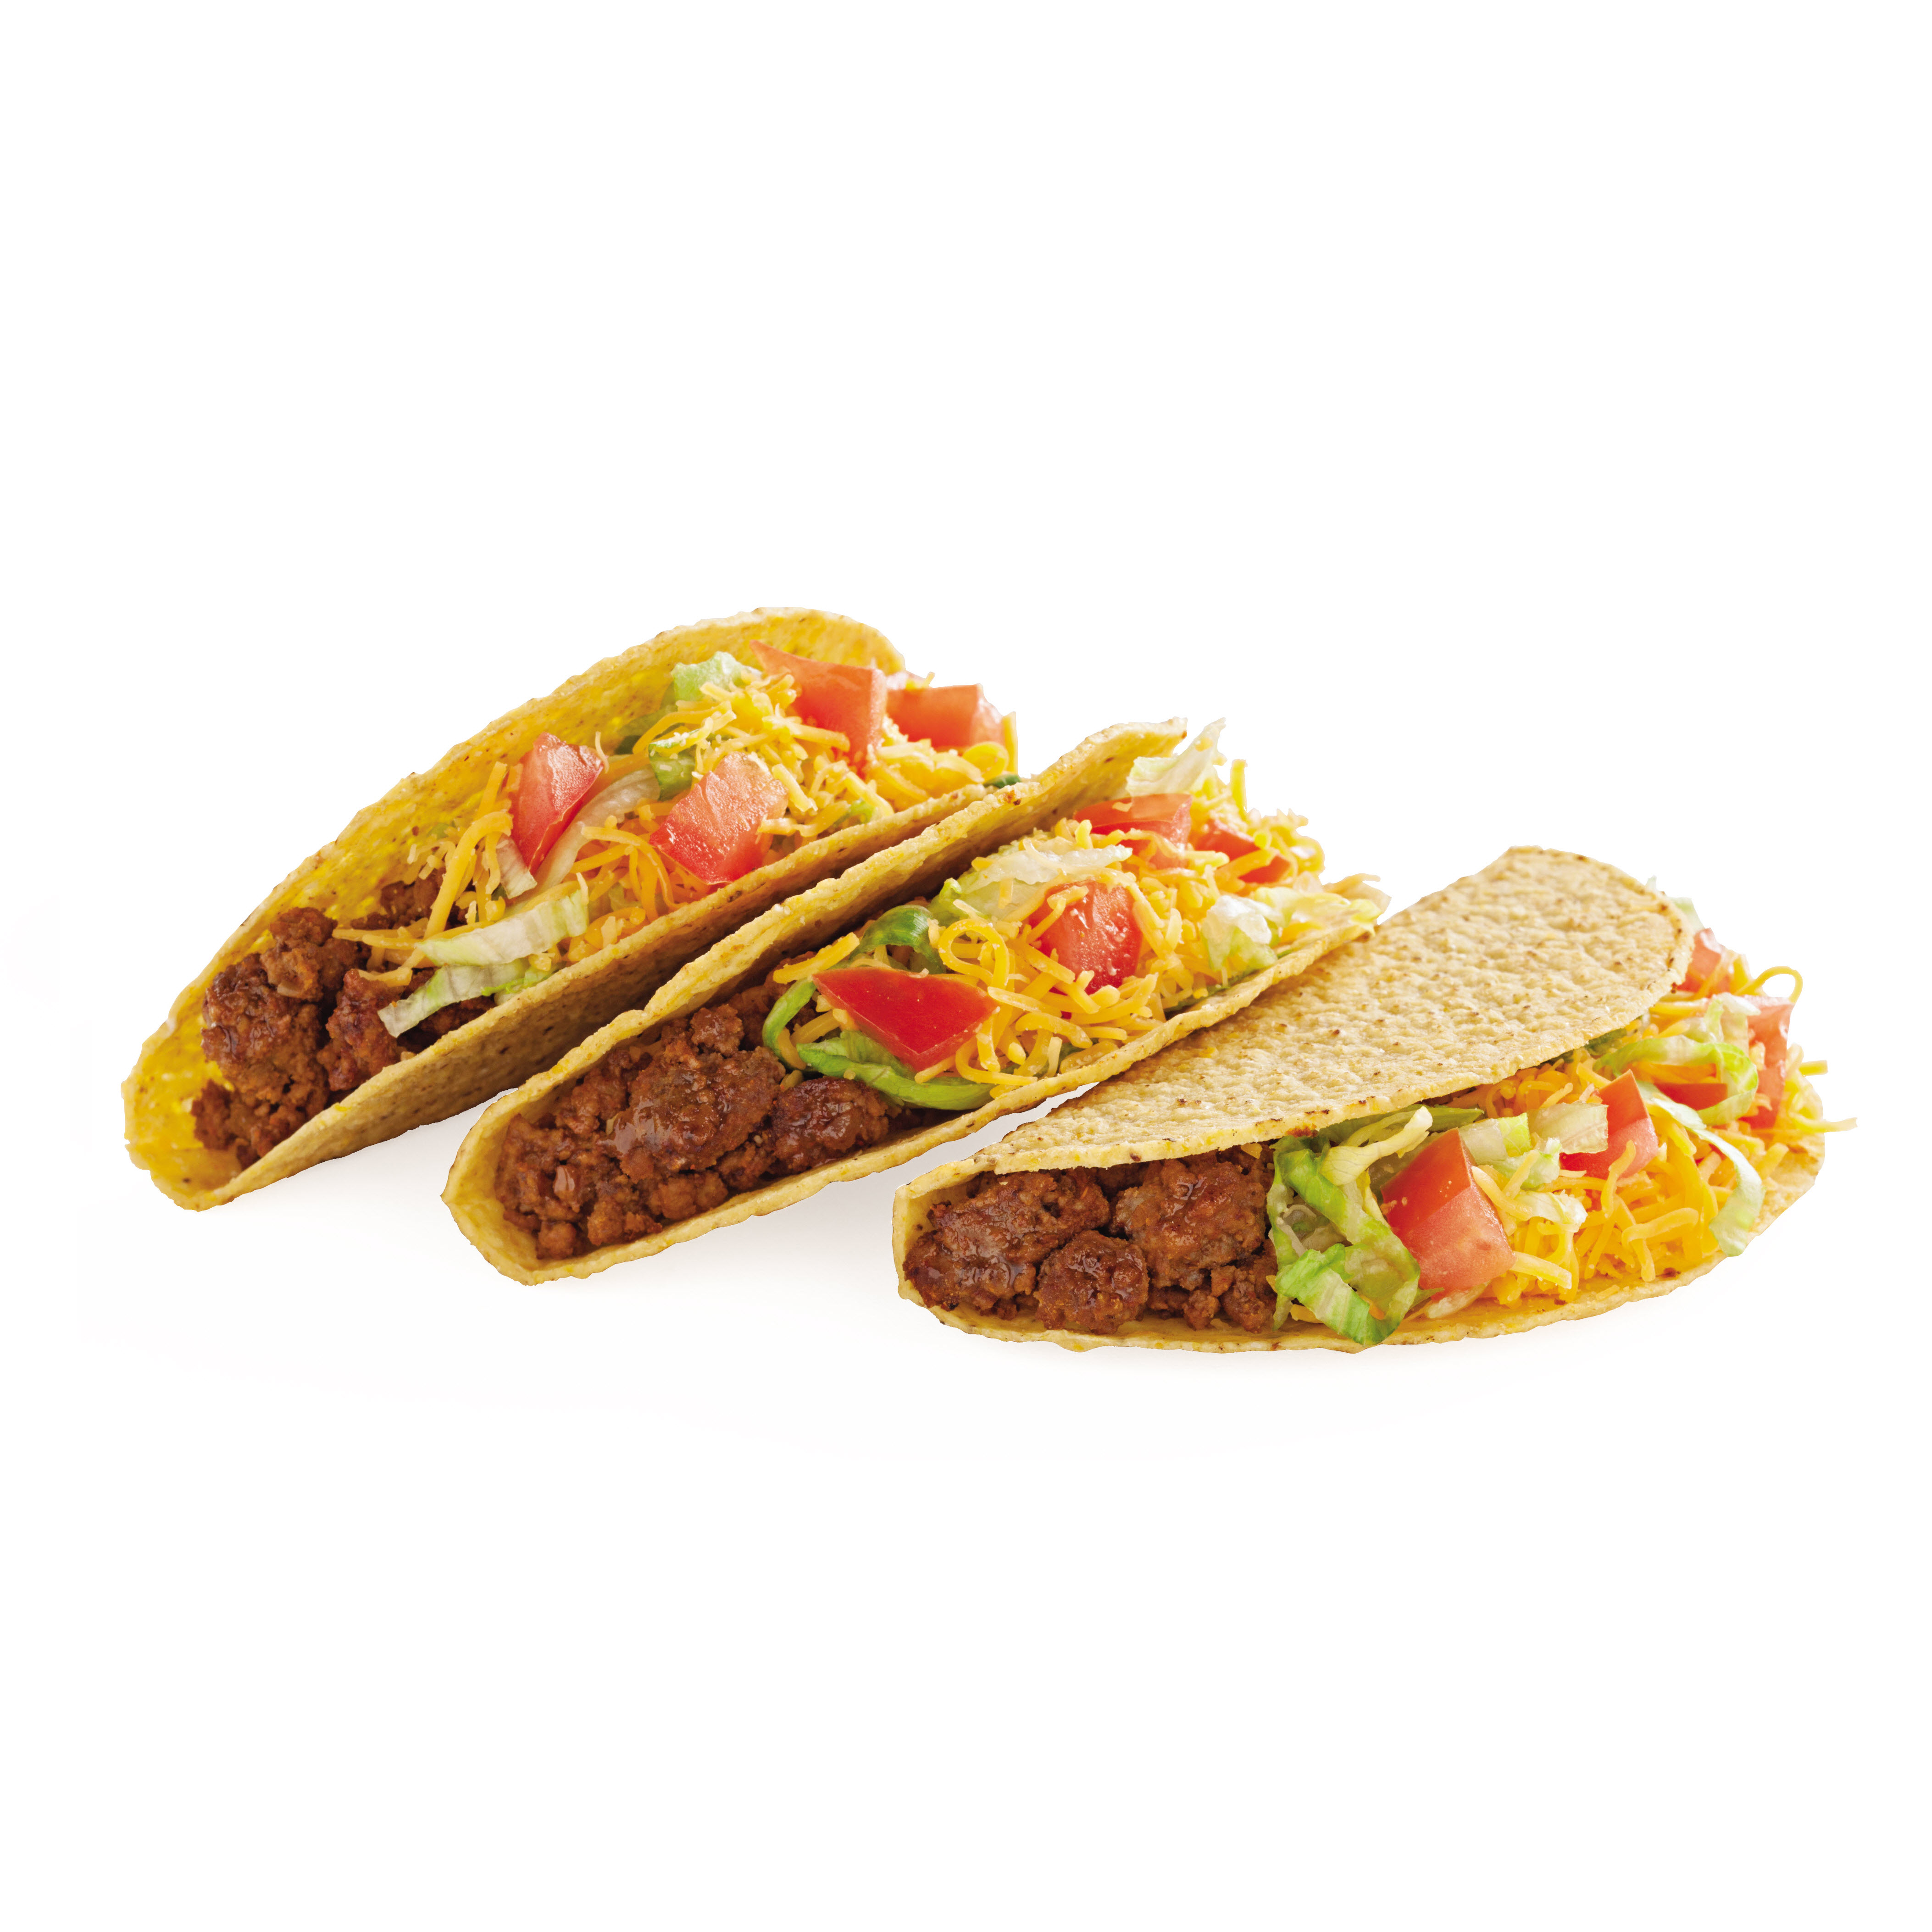 Taco Bar | Hy-Vee Aisles Online Grocery Shopping